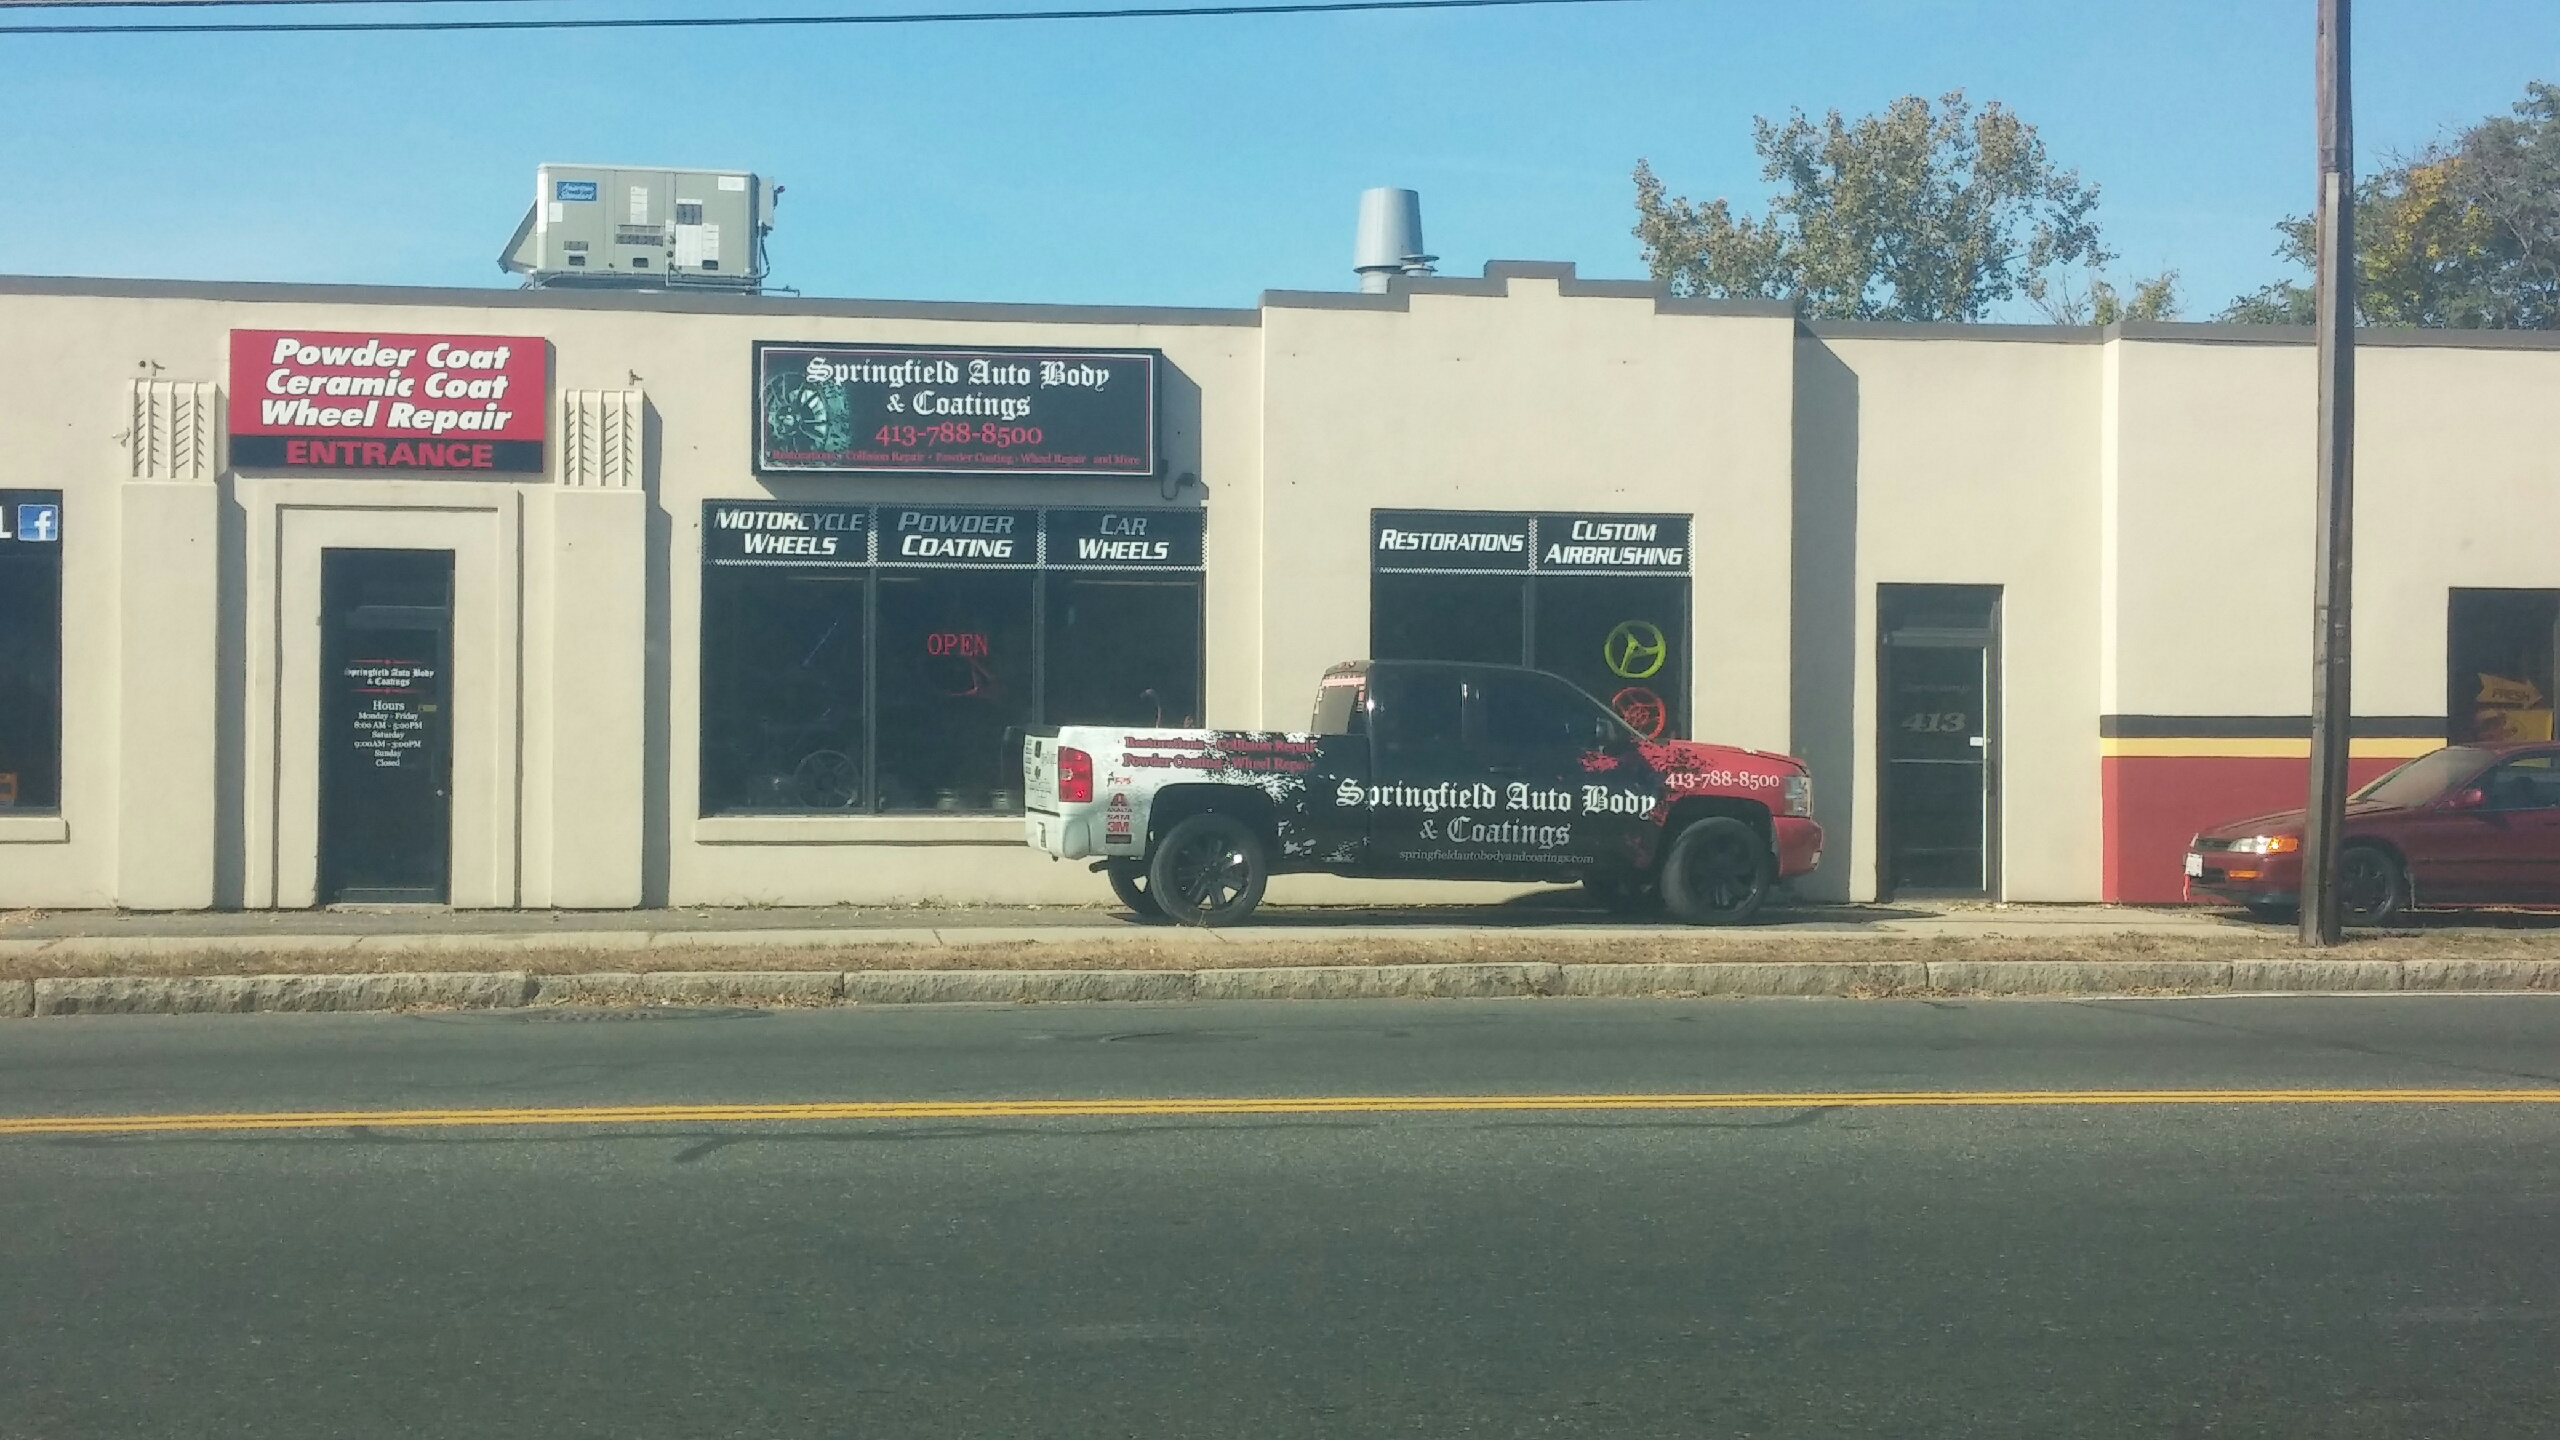 springfield auto body and coatings llc in springfield ma